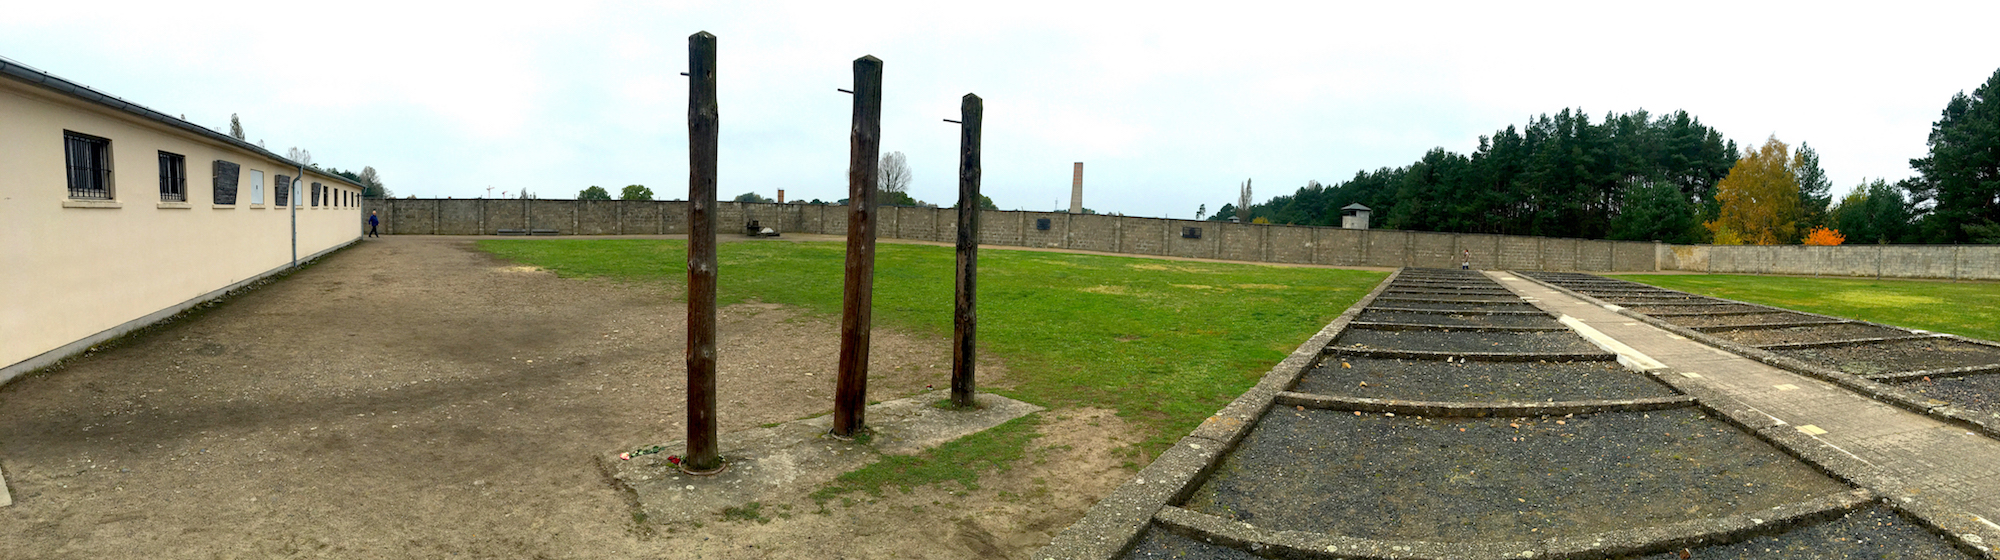 Sachsenhausen concentration camp: torture posts